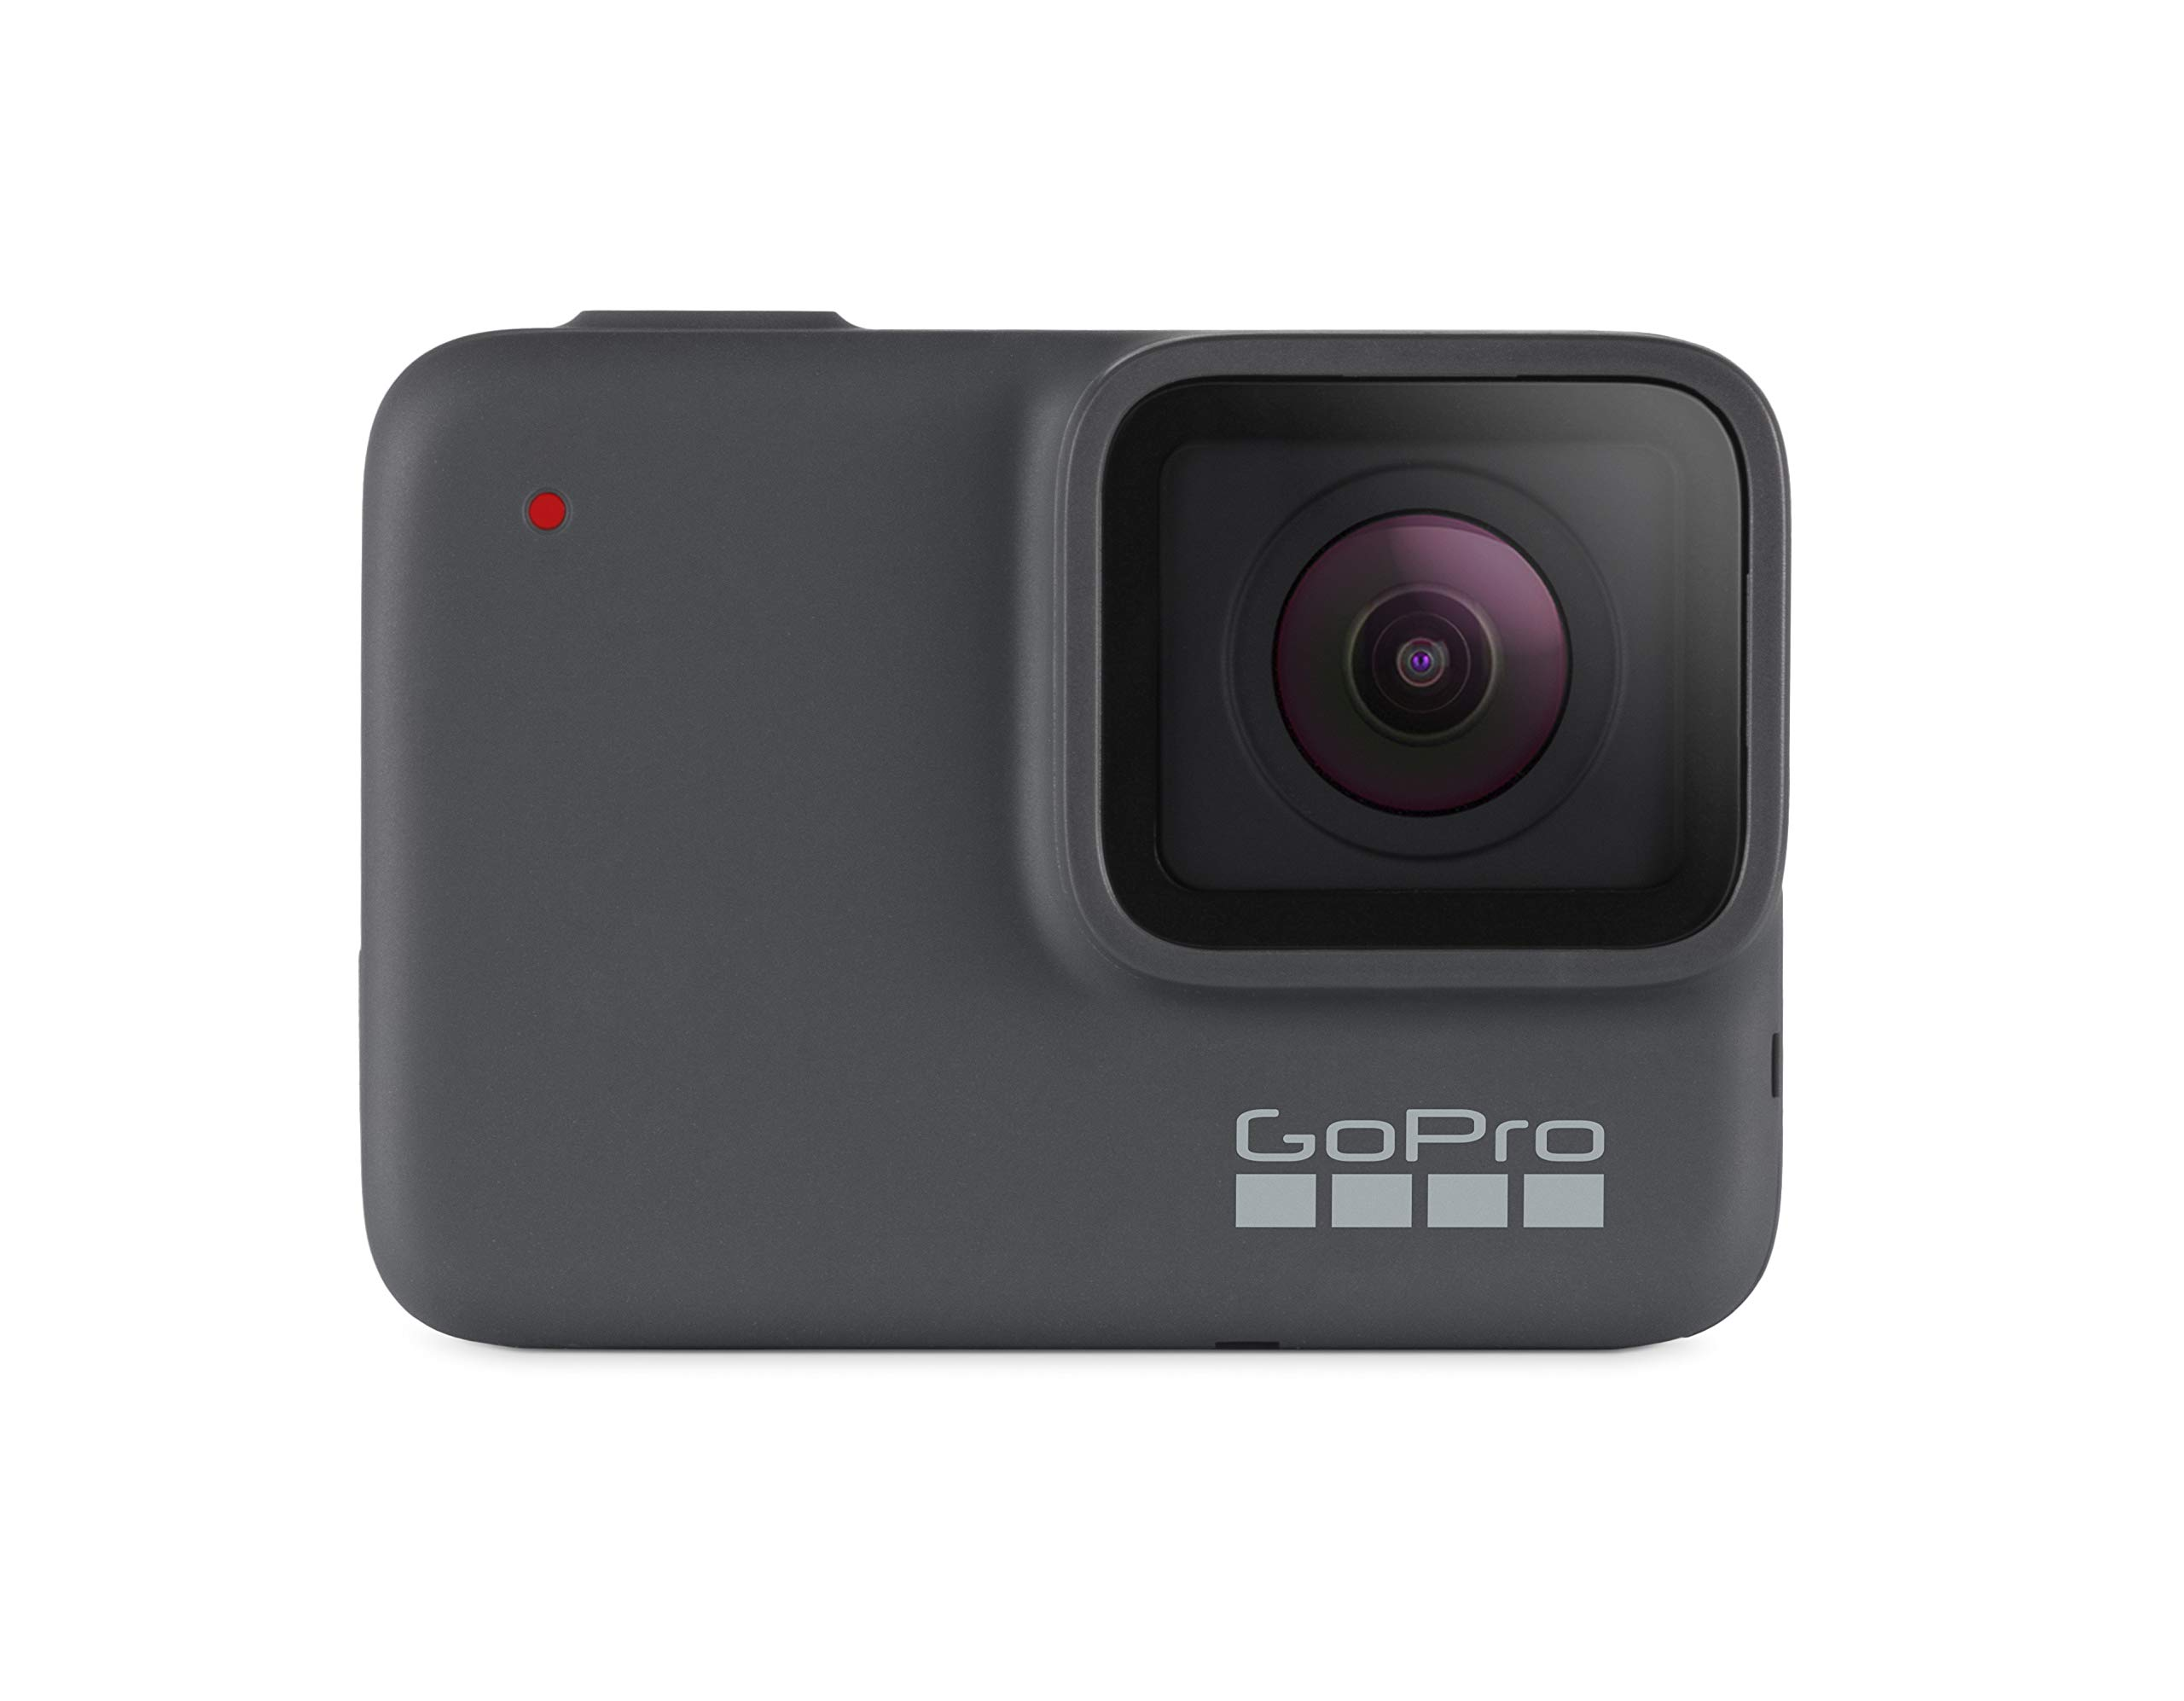 고프로 히어로7 4K 액션캠 GoPro HERO7 Waterproof Digital Action Camera with Touch Screen 4K HD Video 10MP Photos